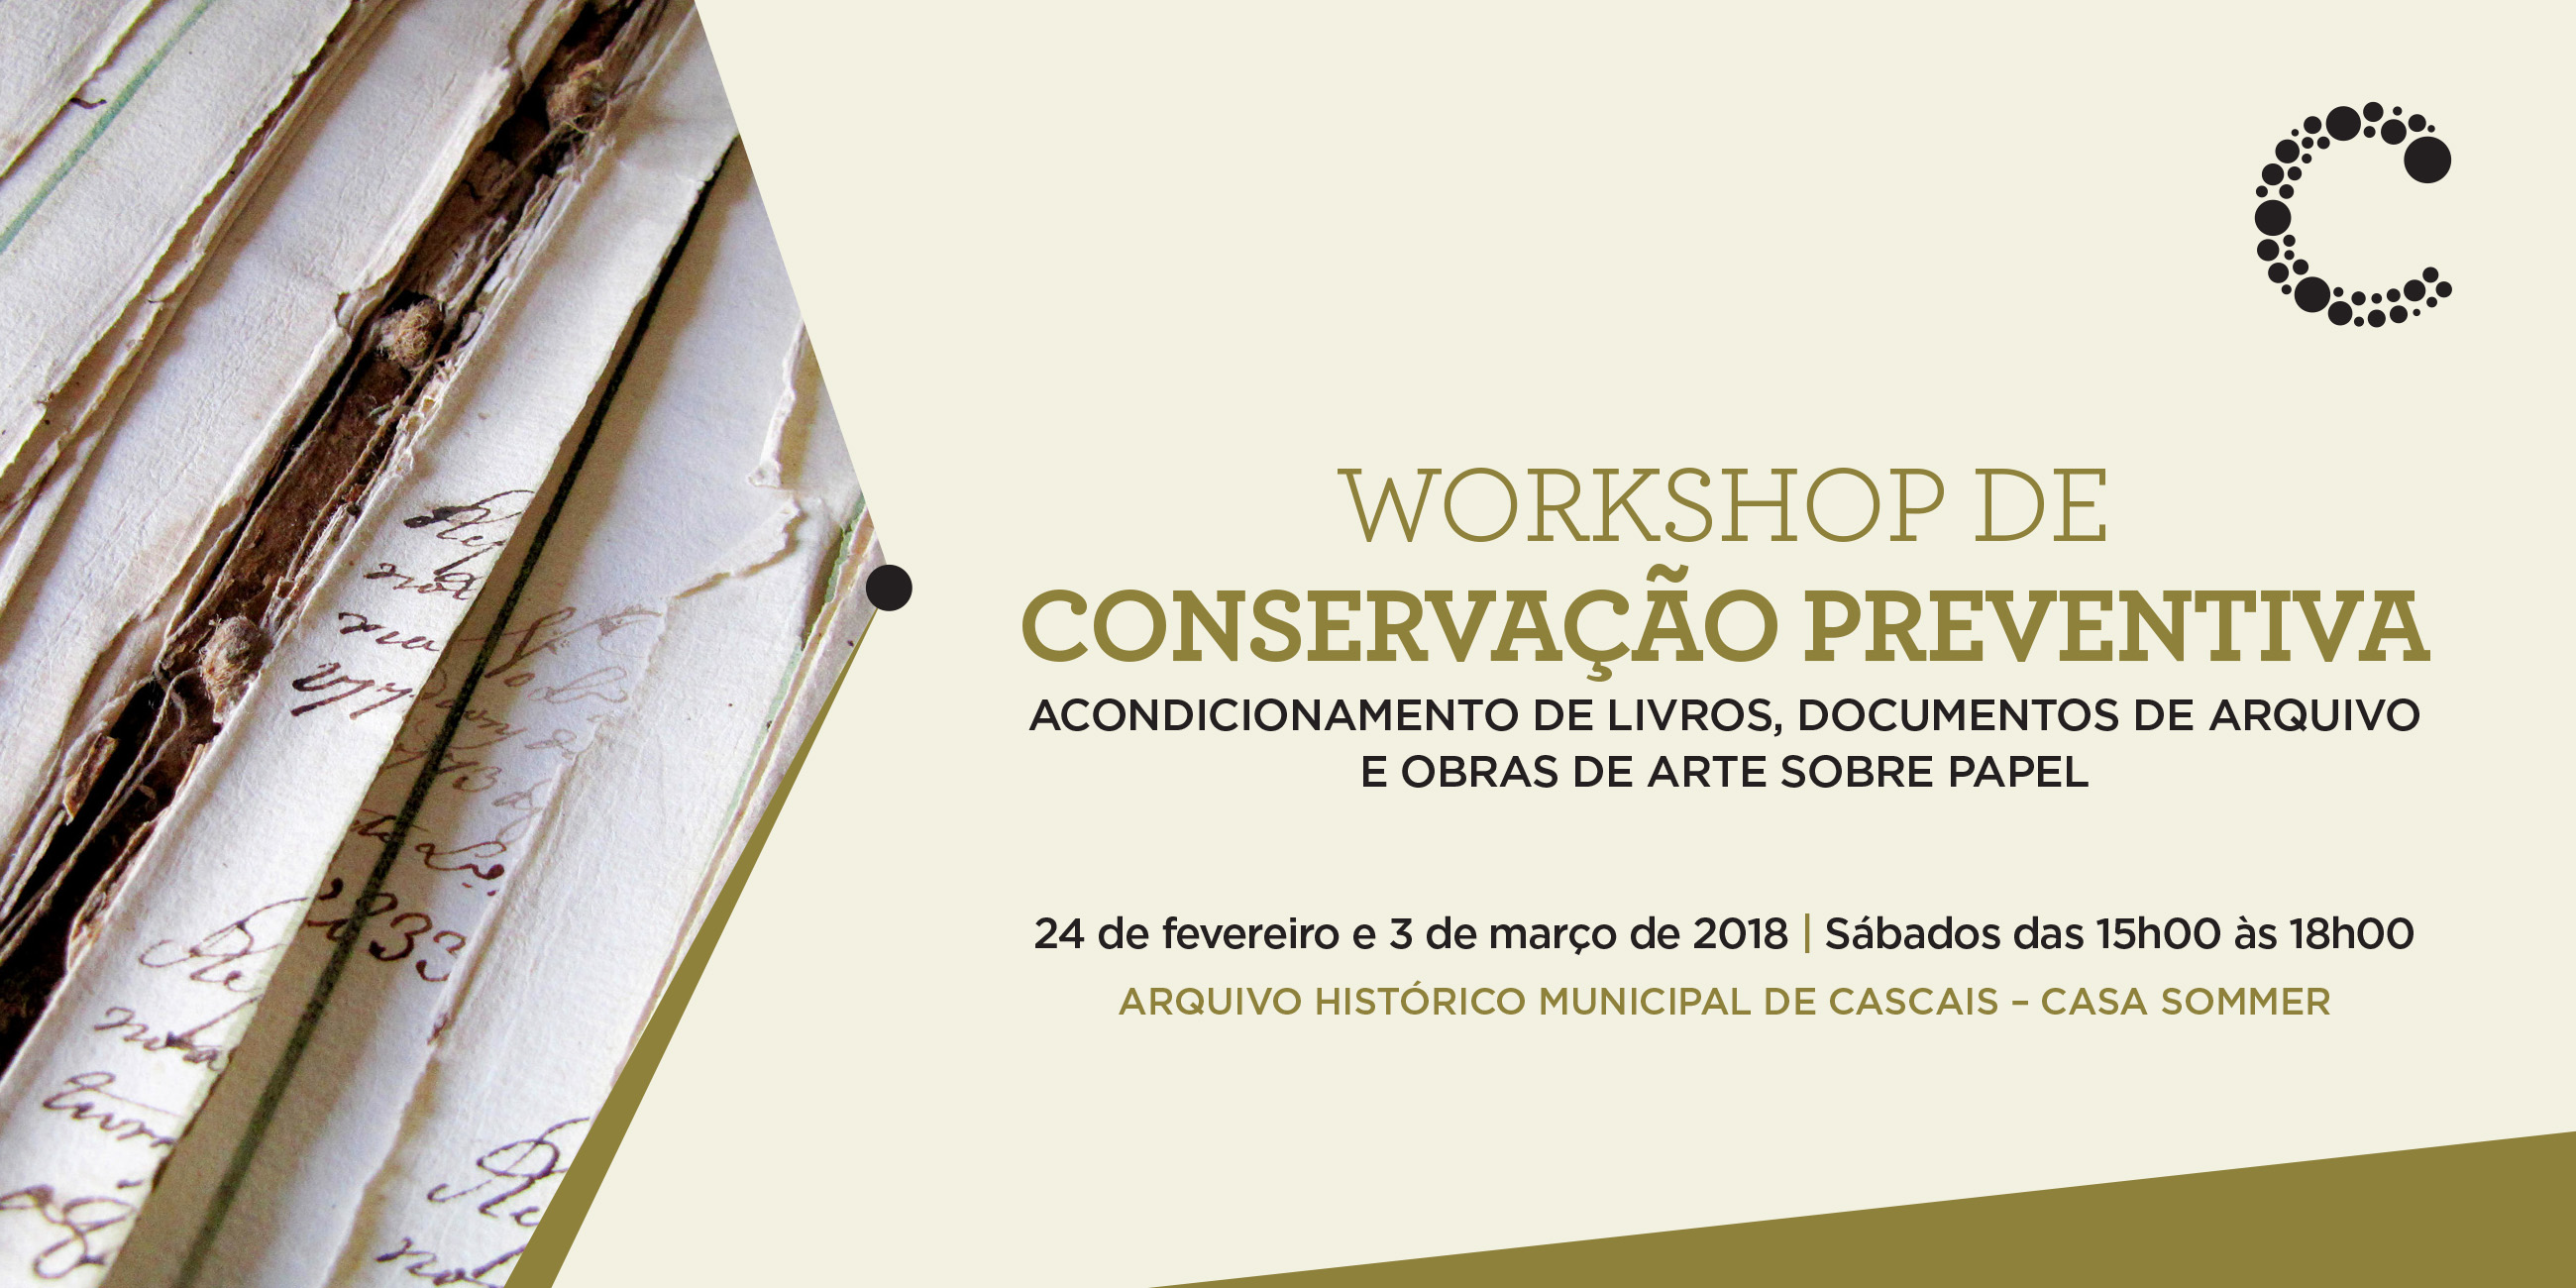 Workshop de conservação preventiva